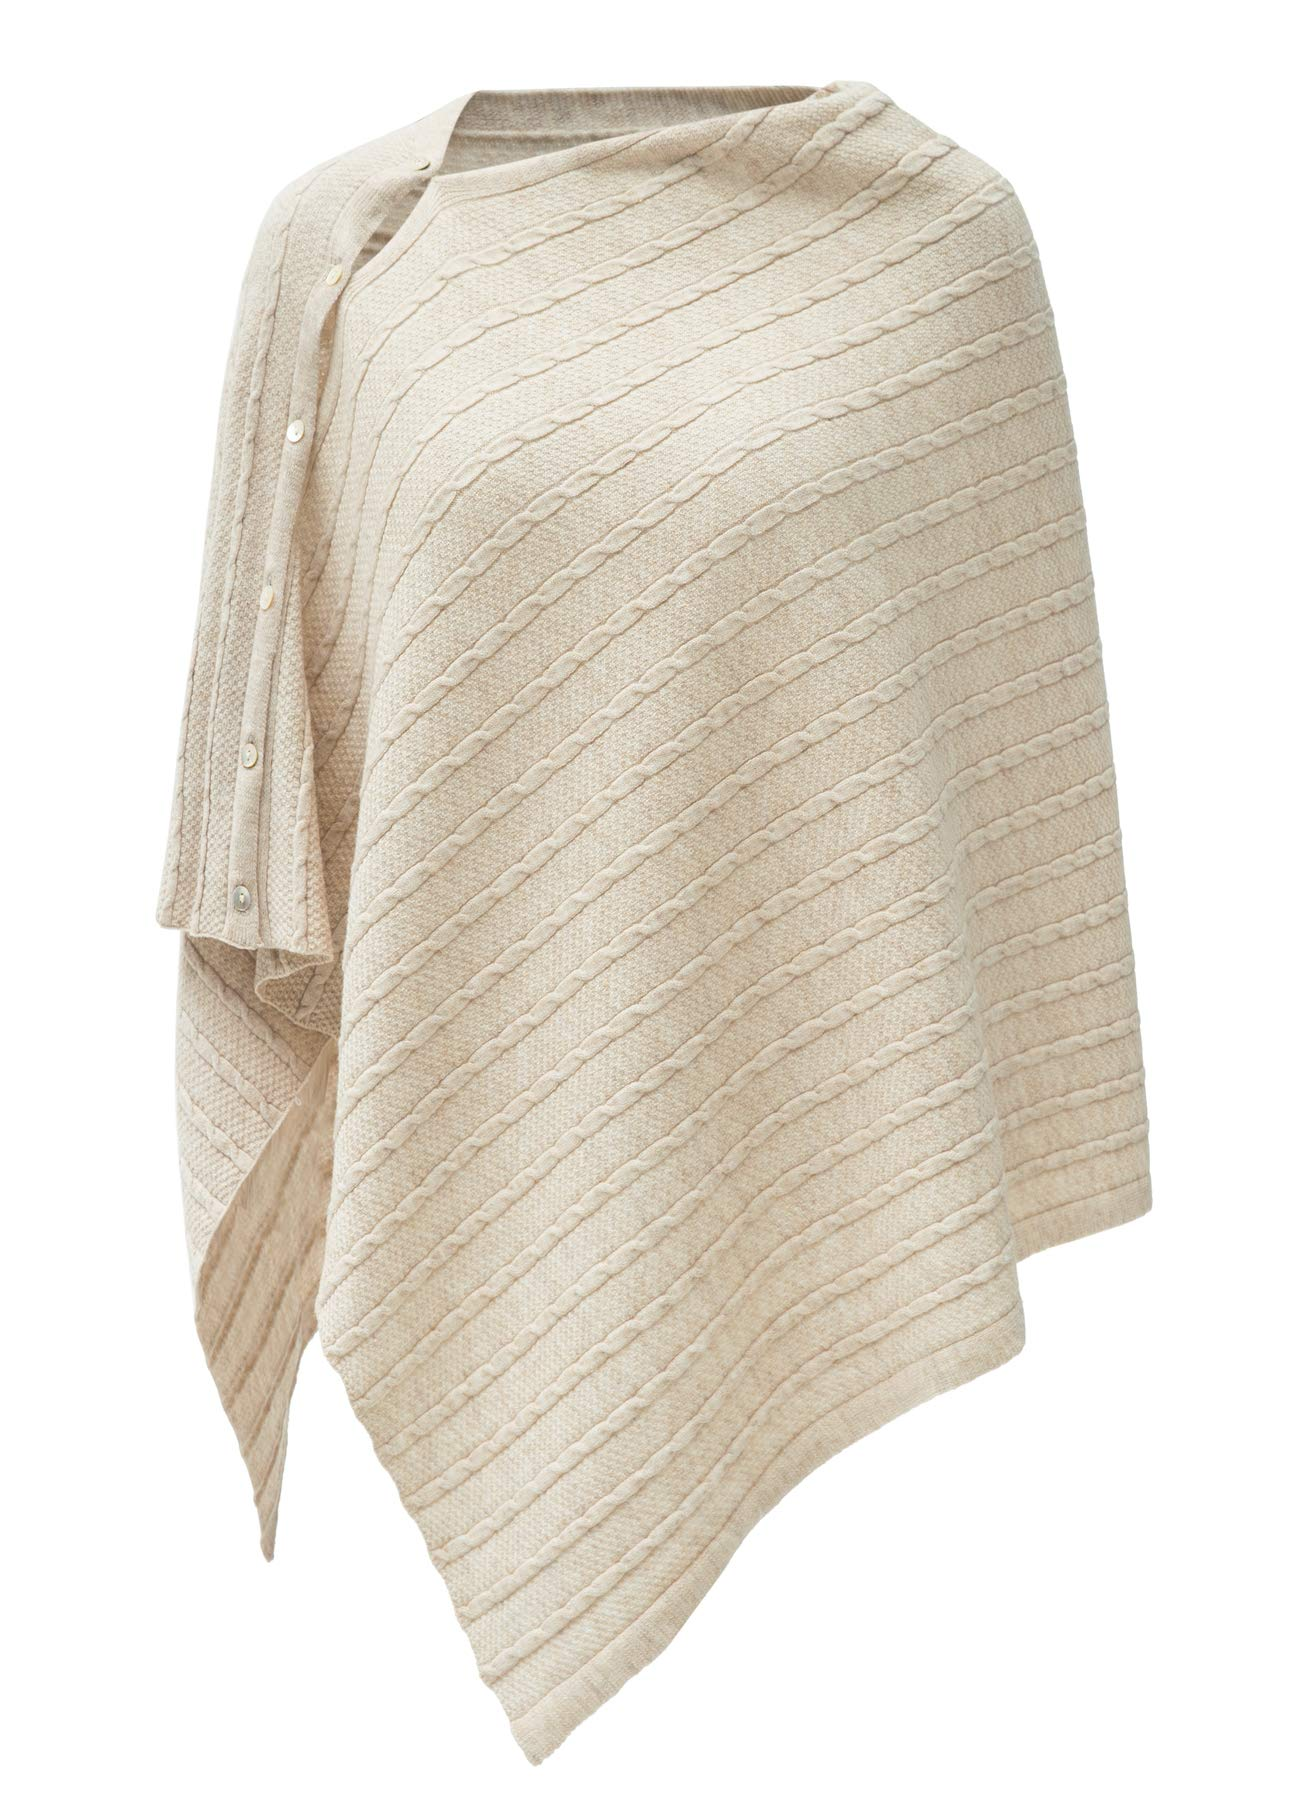 Womens Cable Pattern Lightweight Kintted Poncho Sweater with Shell Button, Versatile Scarf Shawl Cape for Spring Summer Autumn, Barley Twist by Puli (Image #1)